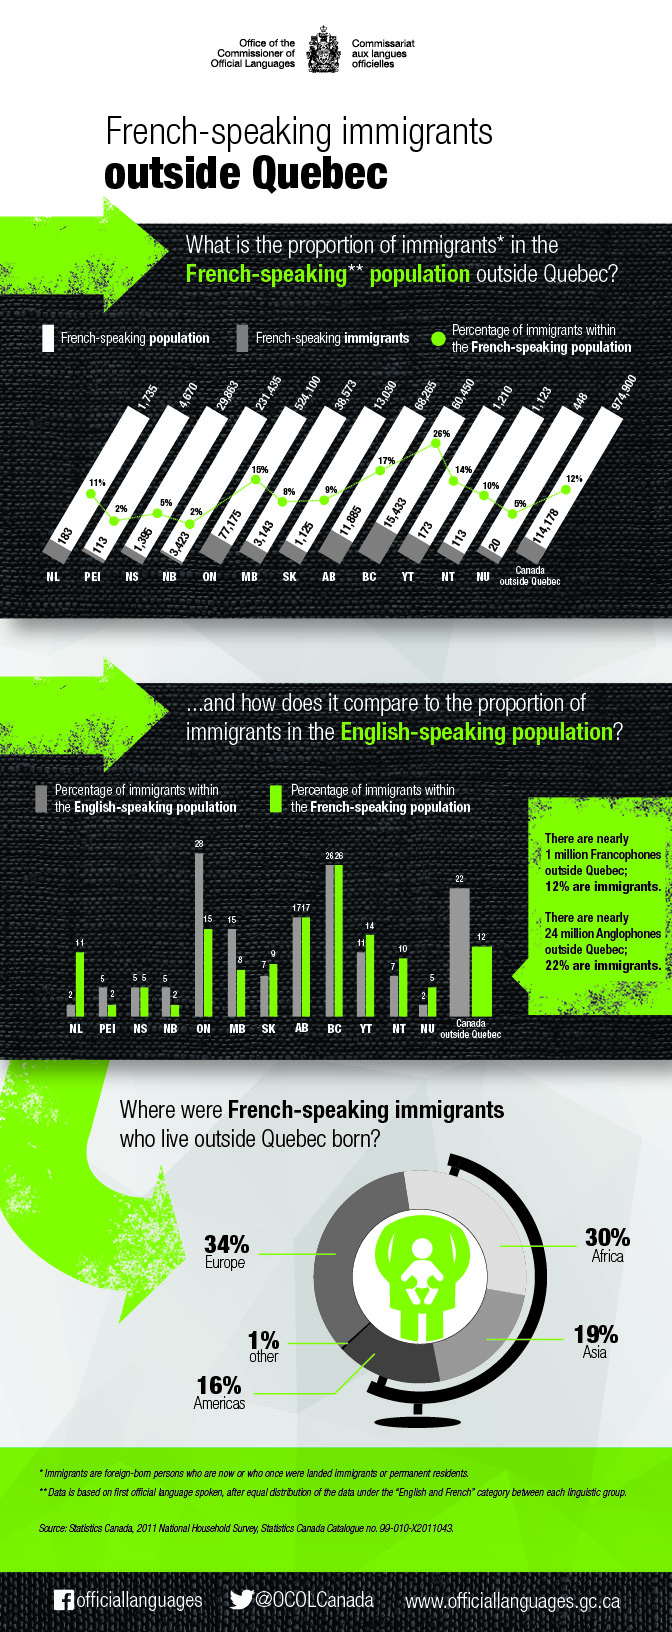 French-speaking immigrants outside Quebec. Details in text following the infographic.